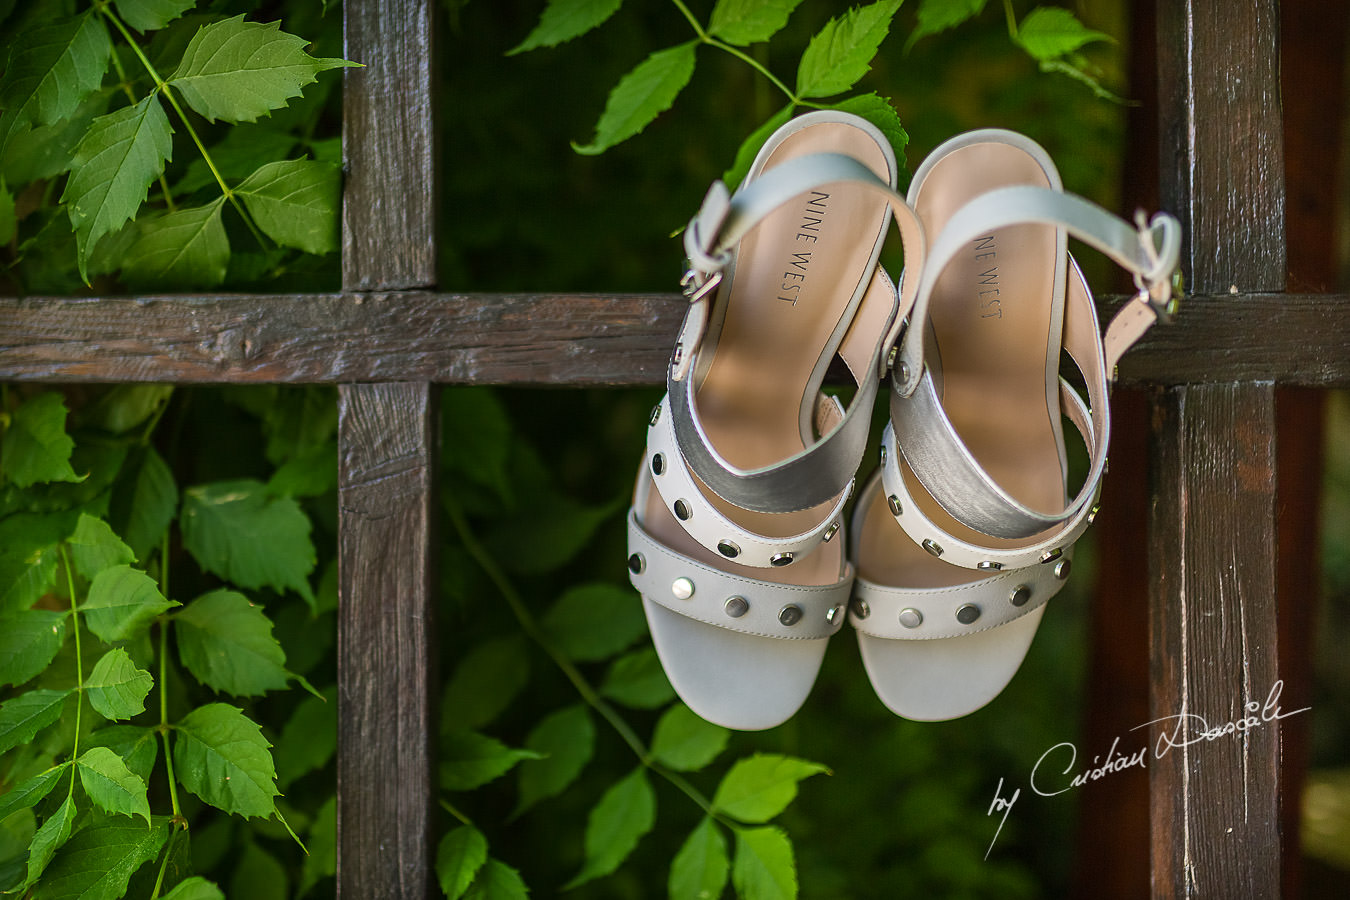 A beautiful wedding day at the Vasilias Nikoklis Inn in Paphos, captured by Cristian Dascalu. Sarah's wedding shoes photographed on Inn's gate.